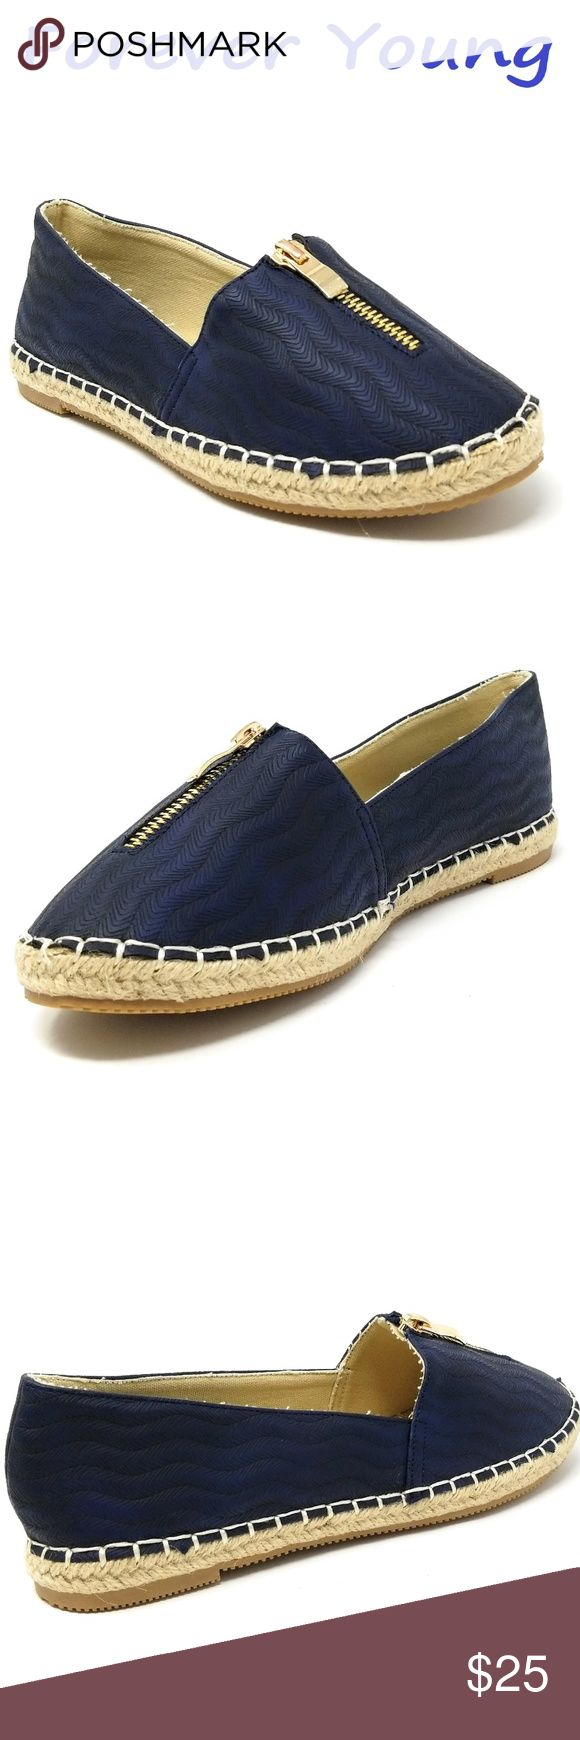 """Women Espadrille Zipper Flats, E-2607, Navy Brand new Forever Young super popular stitched espadrille flats with a decorative zipper along the top. Extra soft insoles. Textured rubber outer sole for traction. 100% man made.  Measurements: sizes 6 through 8 are true to size. Sizes 8.5 - 11 run small. Standard 3 inch width. Size 8 measures 9.5 inches, sz 8.5 = 9 3/4"""", sz 9 = 10"""", sz 10 = 10.5"""", size 11 fits a true size 9.5 wearer. A true statement in ladies shoes fashion! Forever Young Shoes…"""